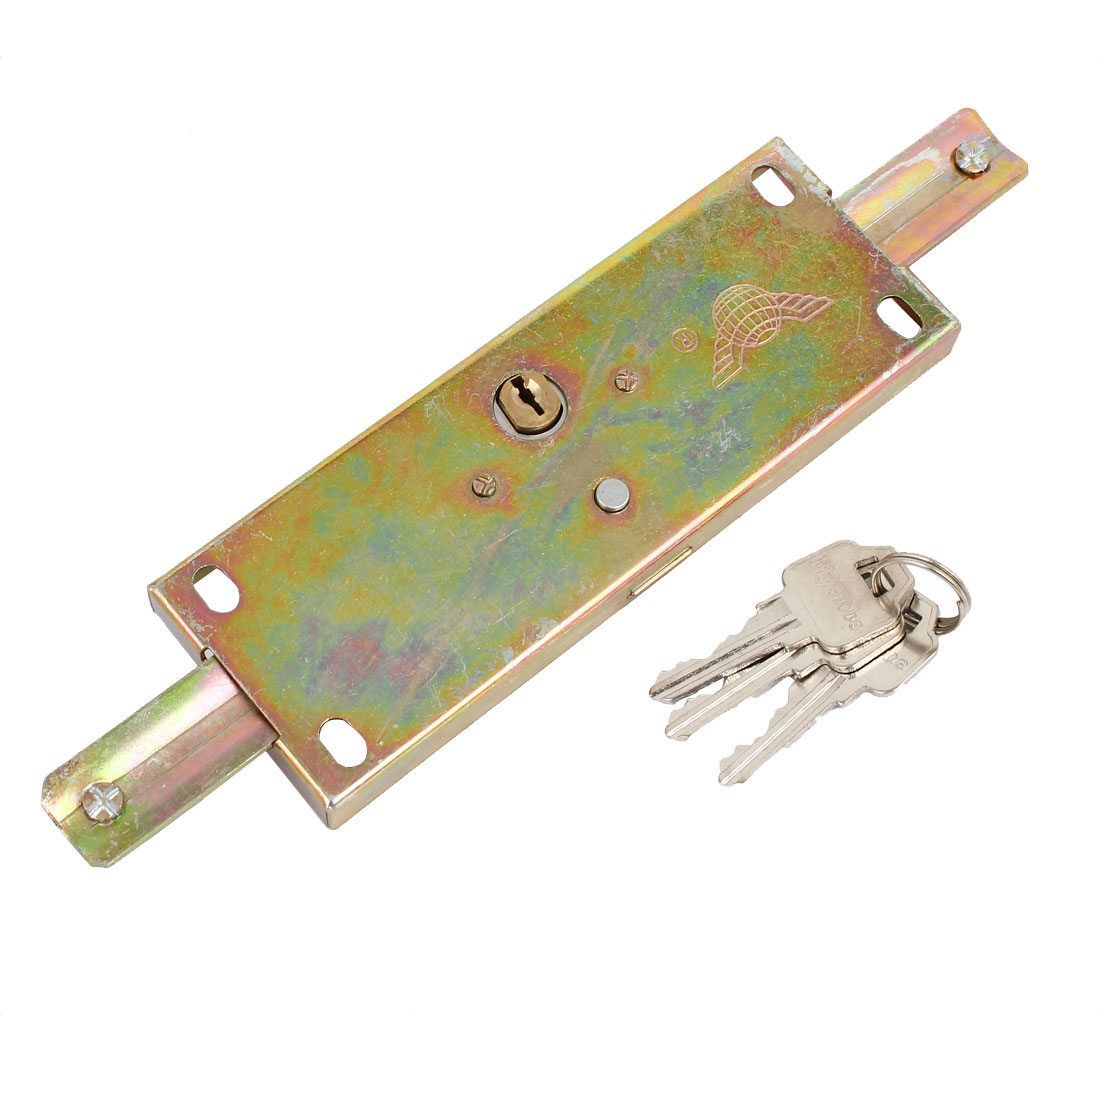 232mm Long Warehouse Rolling Shutter Door Lock Bronze Tone w 3 Keys